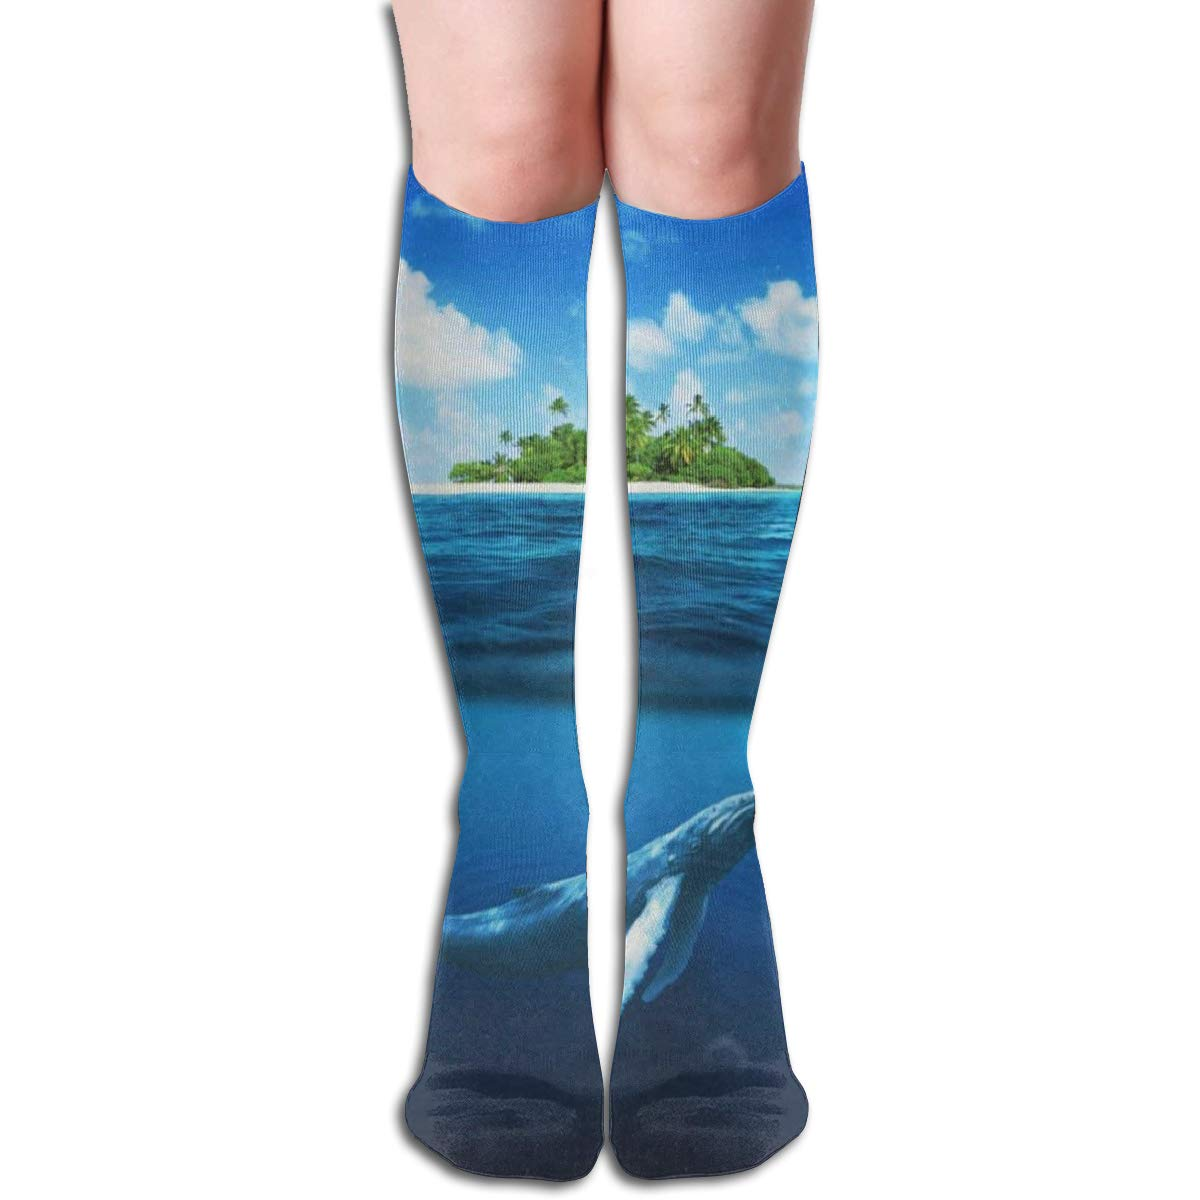 Stretch Stocking Whale Shark Near Island Soccer Socks Over The Calf Amazing For Running,Athletic,Travel